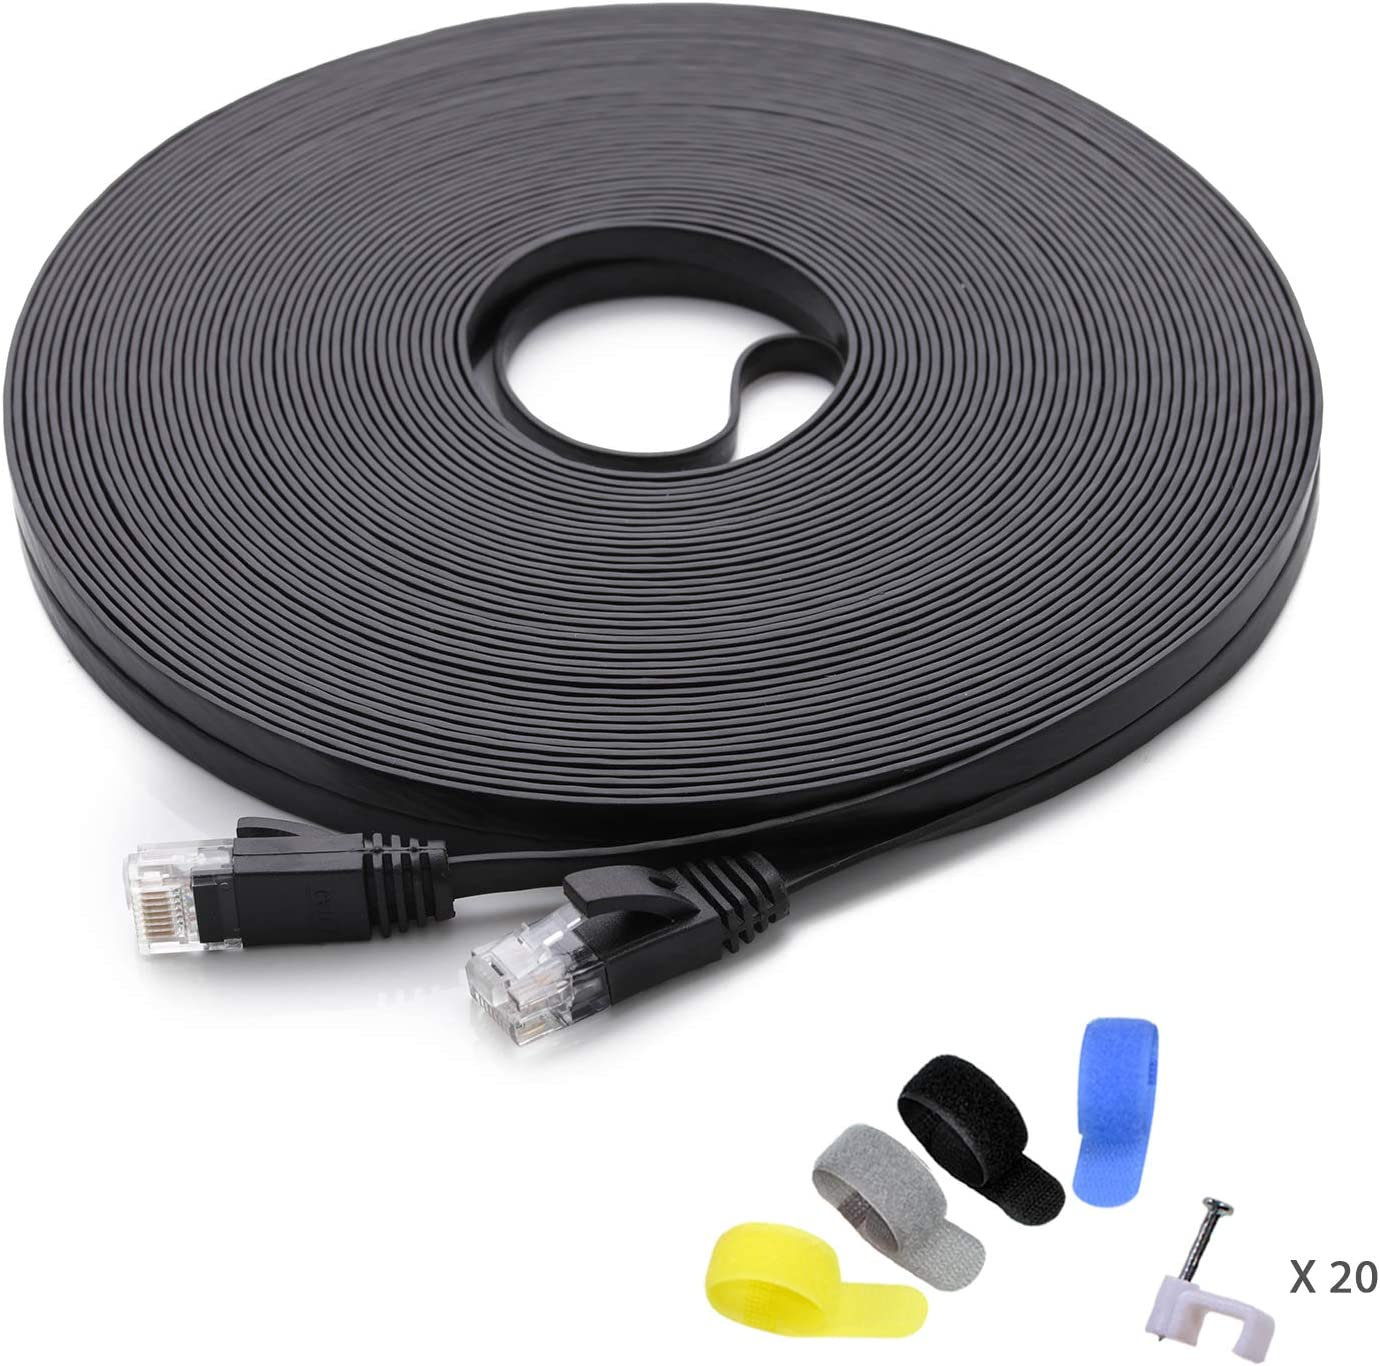 Cat 6 Ethernet Cable 100 ft (at a Cat5e Price but Higher Bandwidth) Flat Internet Network Cable - Cat6 Ethernet Patch Cable Short - Black Computer LAN Cable + Free Cable Clips and Straps: Computers & Accessories